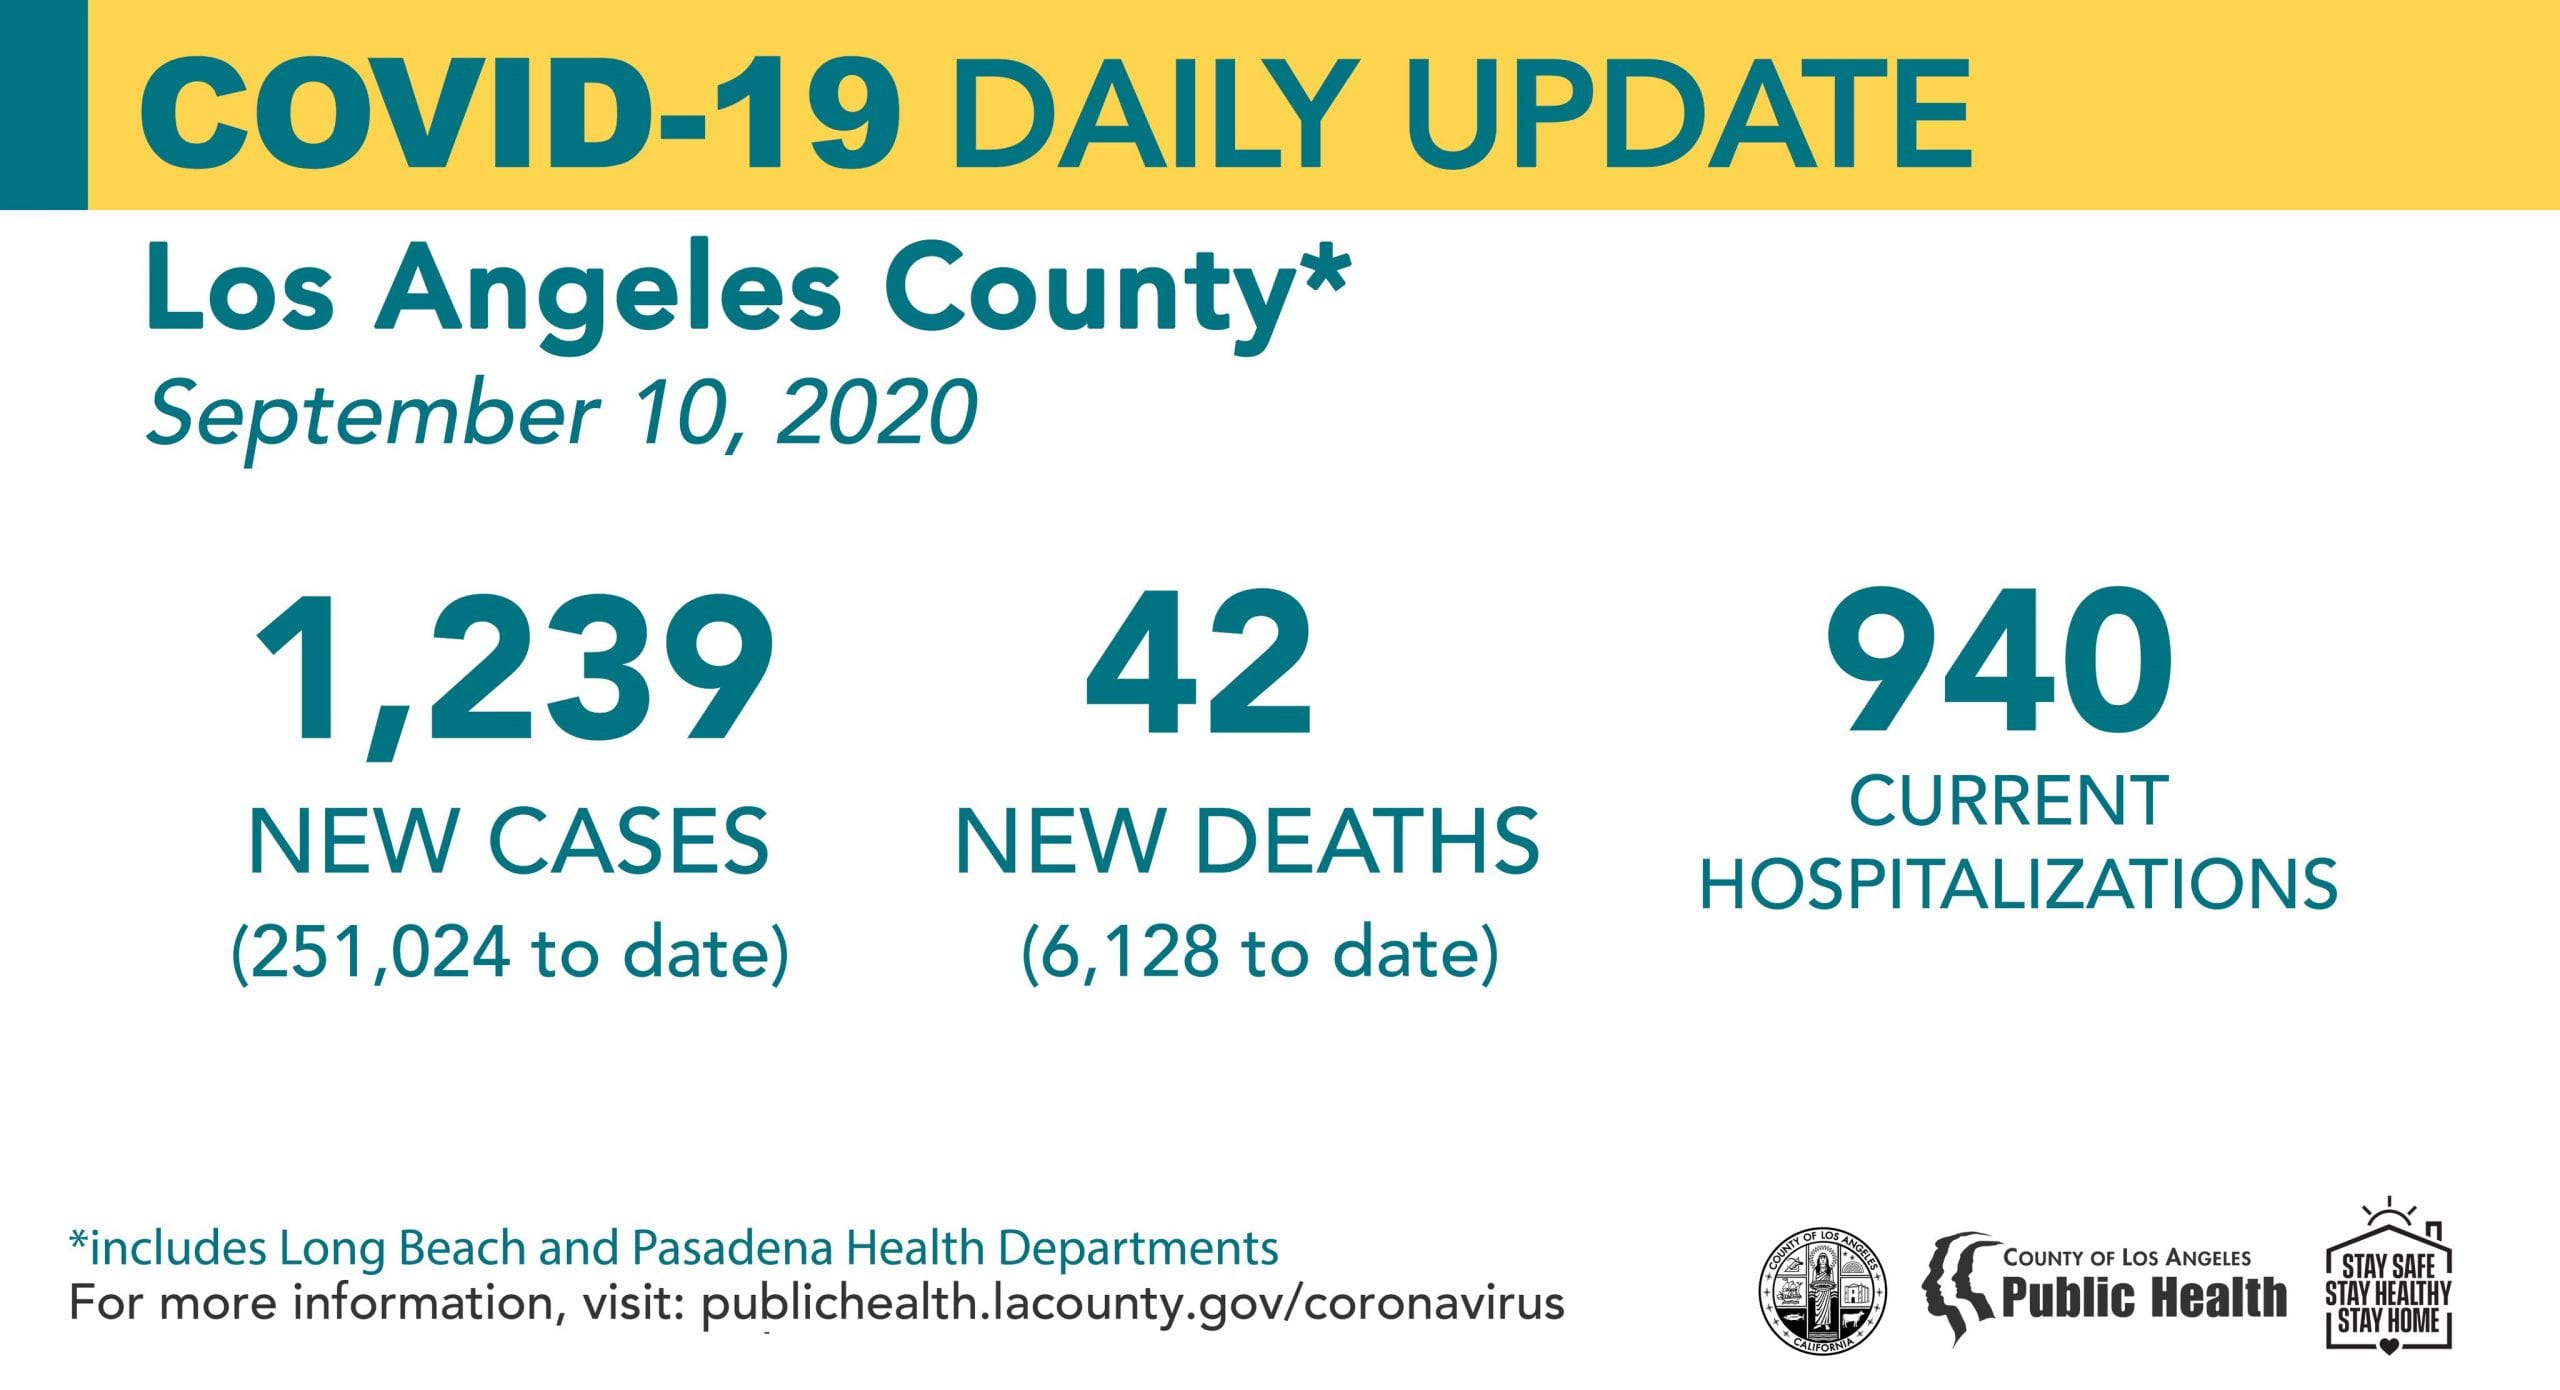 Scv News Thursday Covid 19 Roundup 251 024 Cases 42 New Deaths Countywide 5 579 Scv Cases Scvnews Com